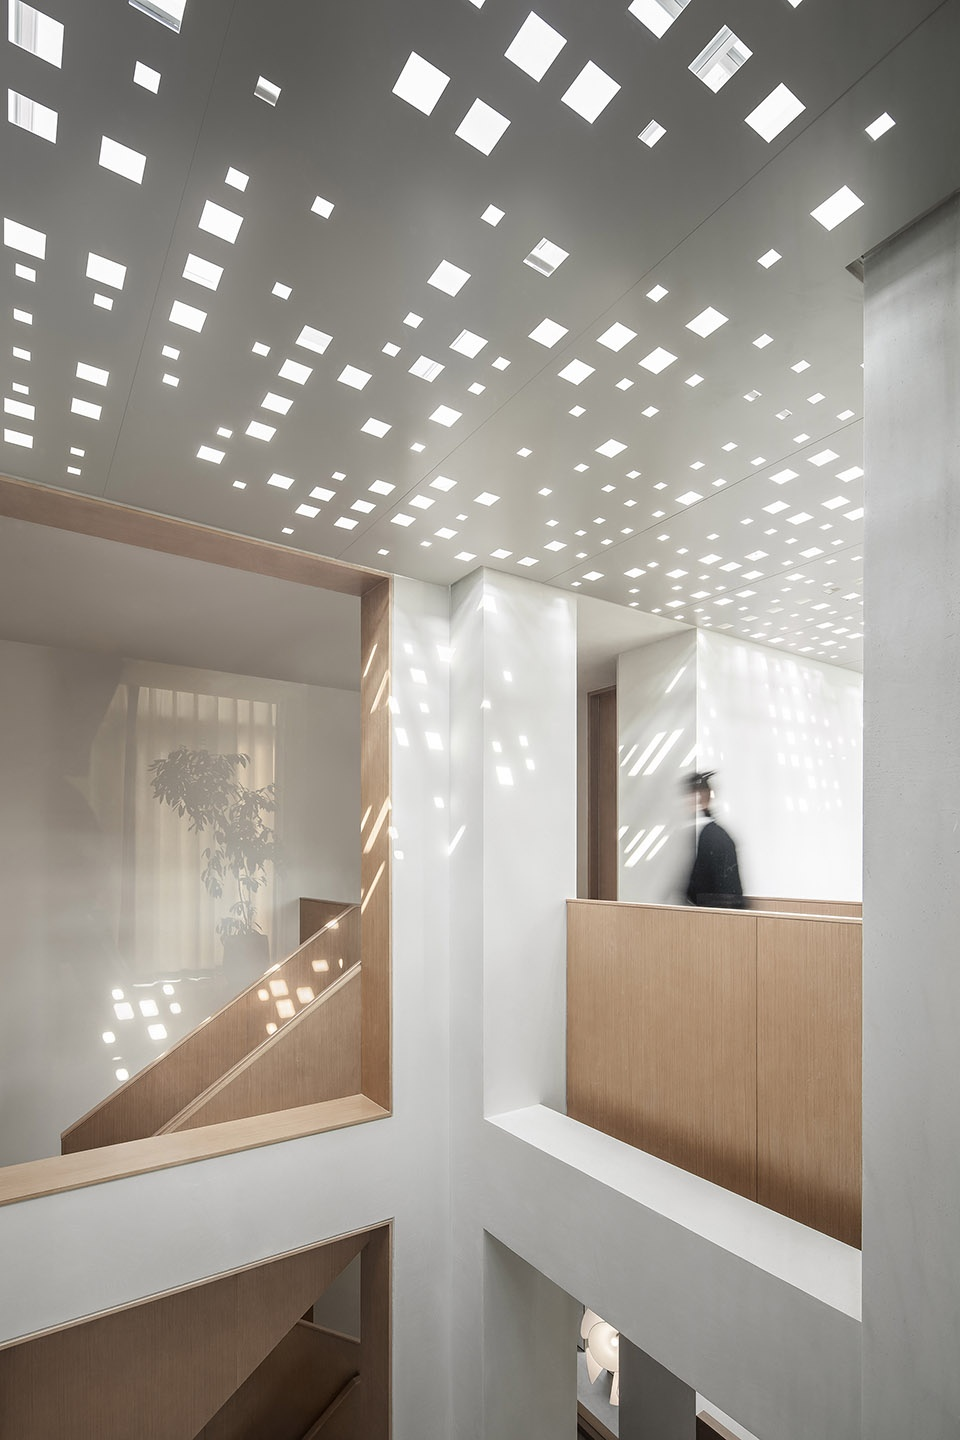 026-a-desired-home-china-by-liang-architecture-studio-960x1440.jpg